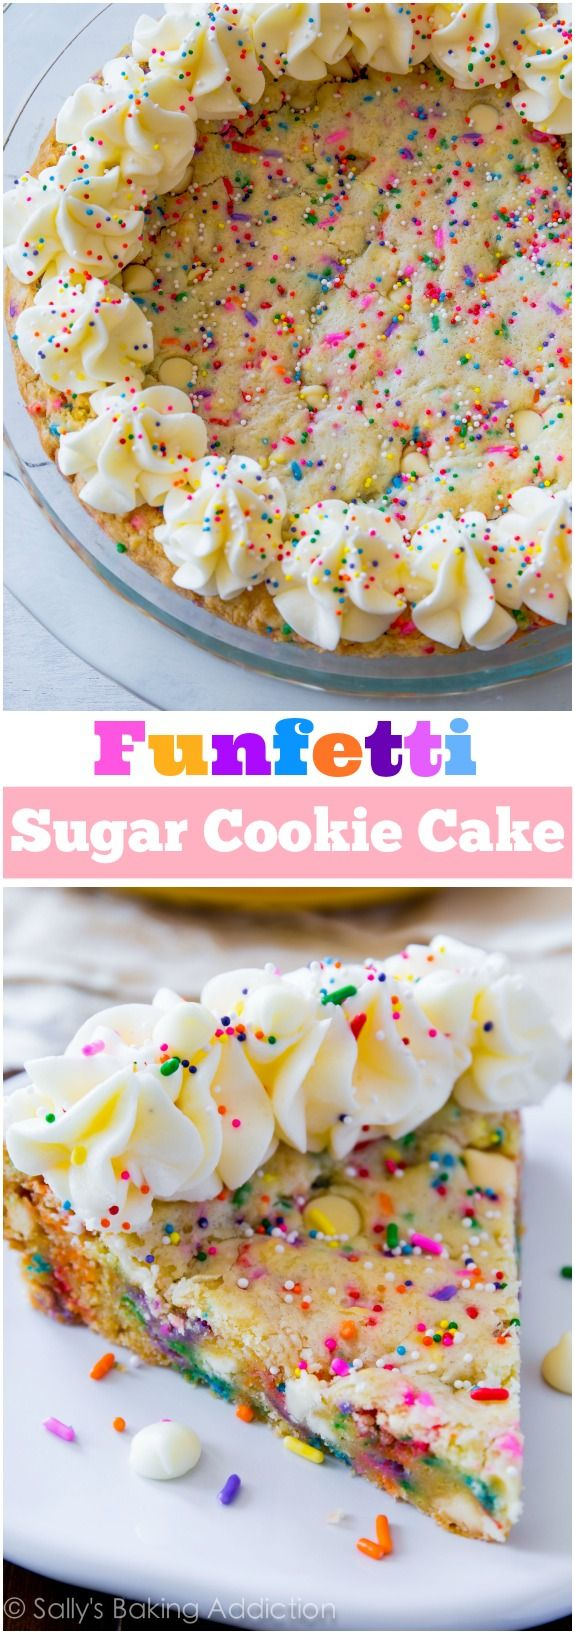 Sally's Baking Addiction Funfetti Sugar Cookie Cake - soft, chewy, thick, and loaded with sprinkles and white chocolate chips.